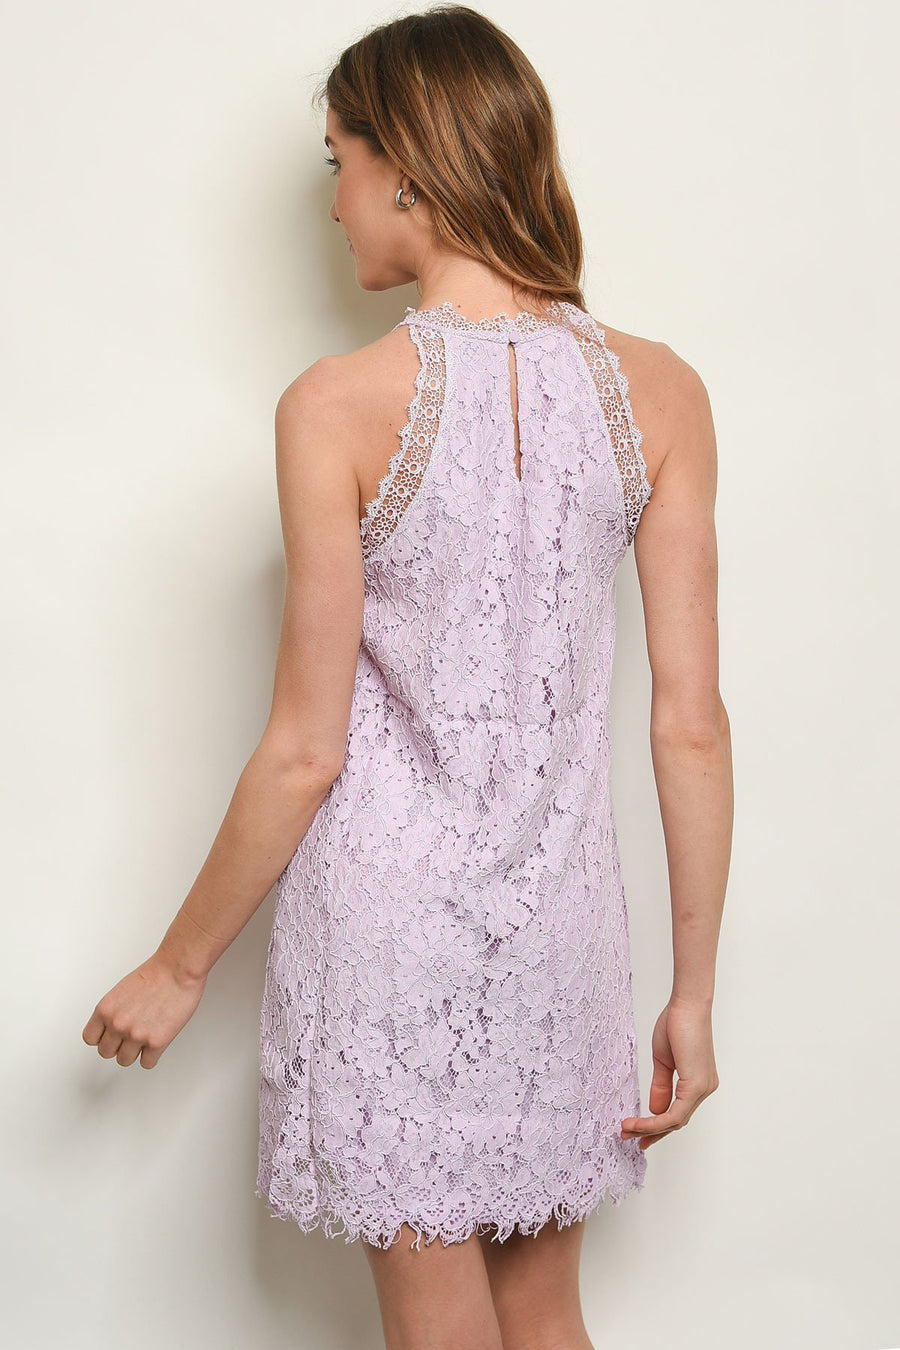 Lavender Dress - TrendyLyfeUSA